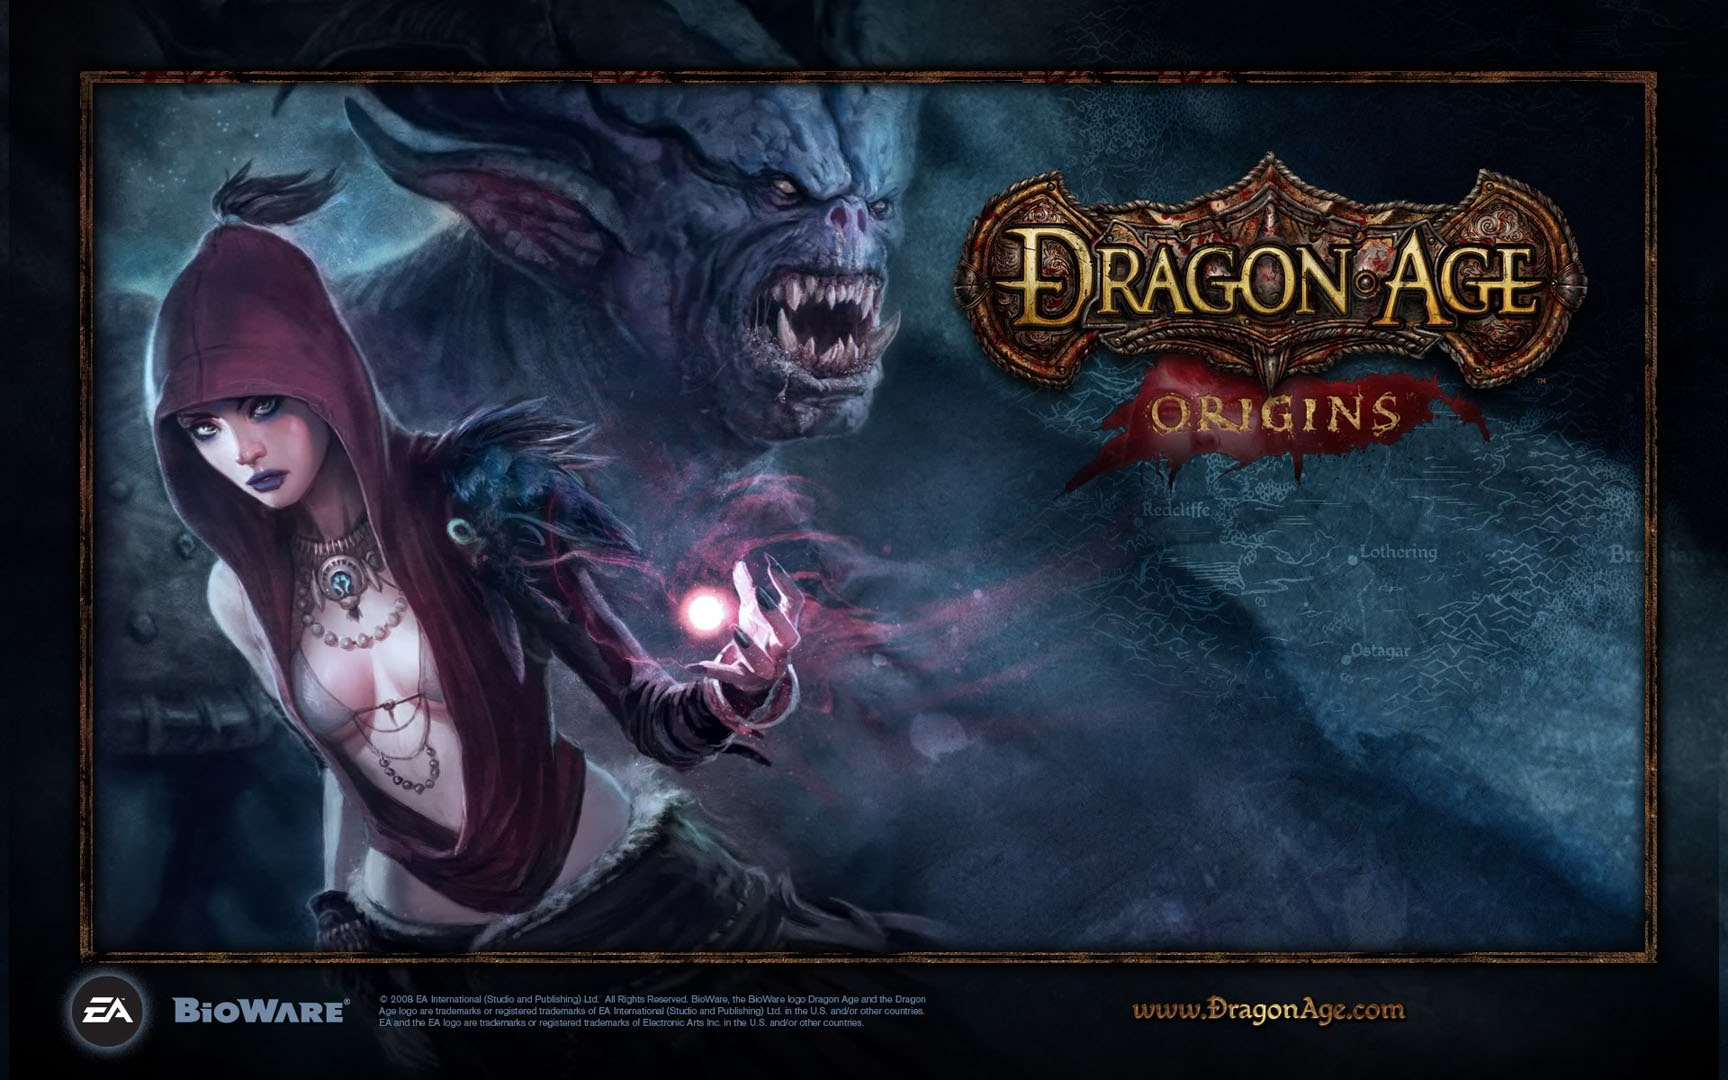 Dragon Age Bioware Video Games Rpg Fantasy Art: Dragon Age Wallpaper